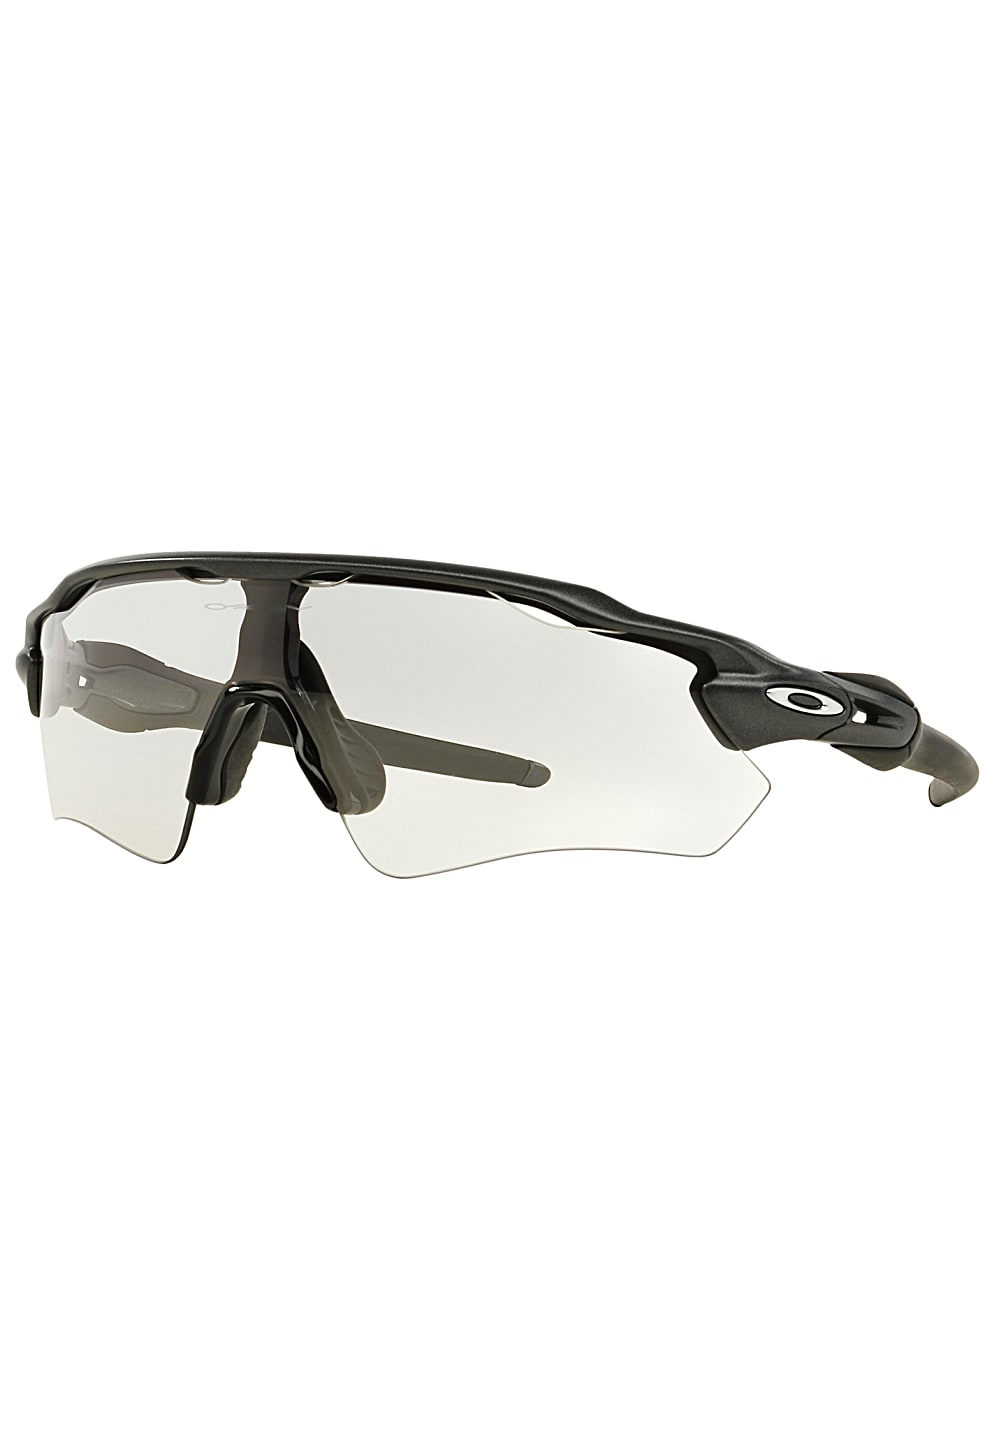 bde8f509ab ... Sports Glasses · OAKLEY Radar EV Path - Sunglasses - Grey. Back to  Overview. 1  2  3  4. Previous